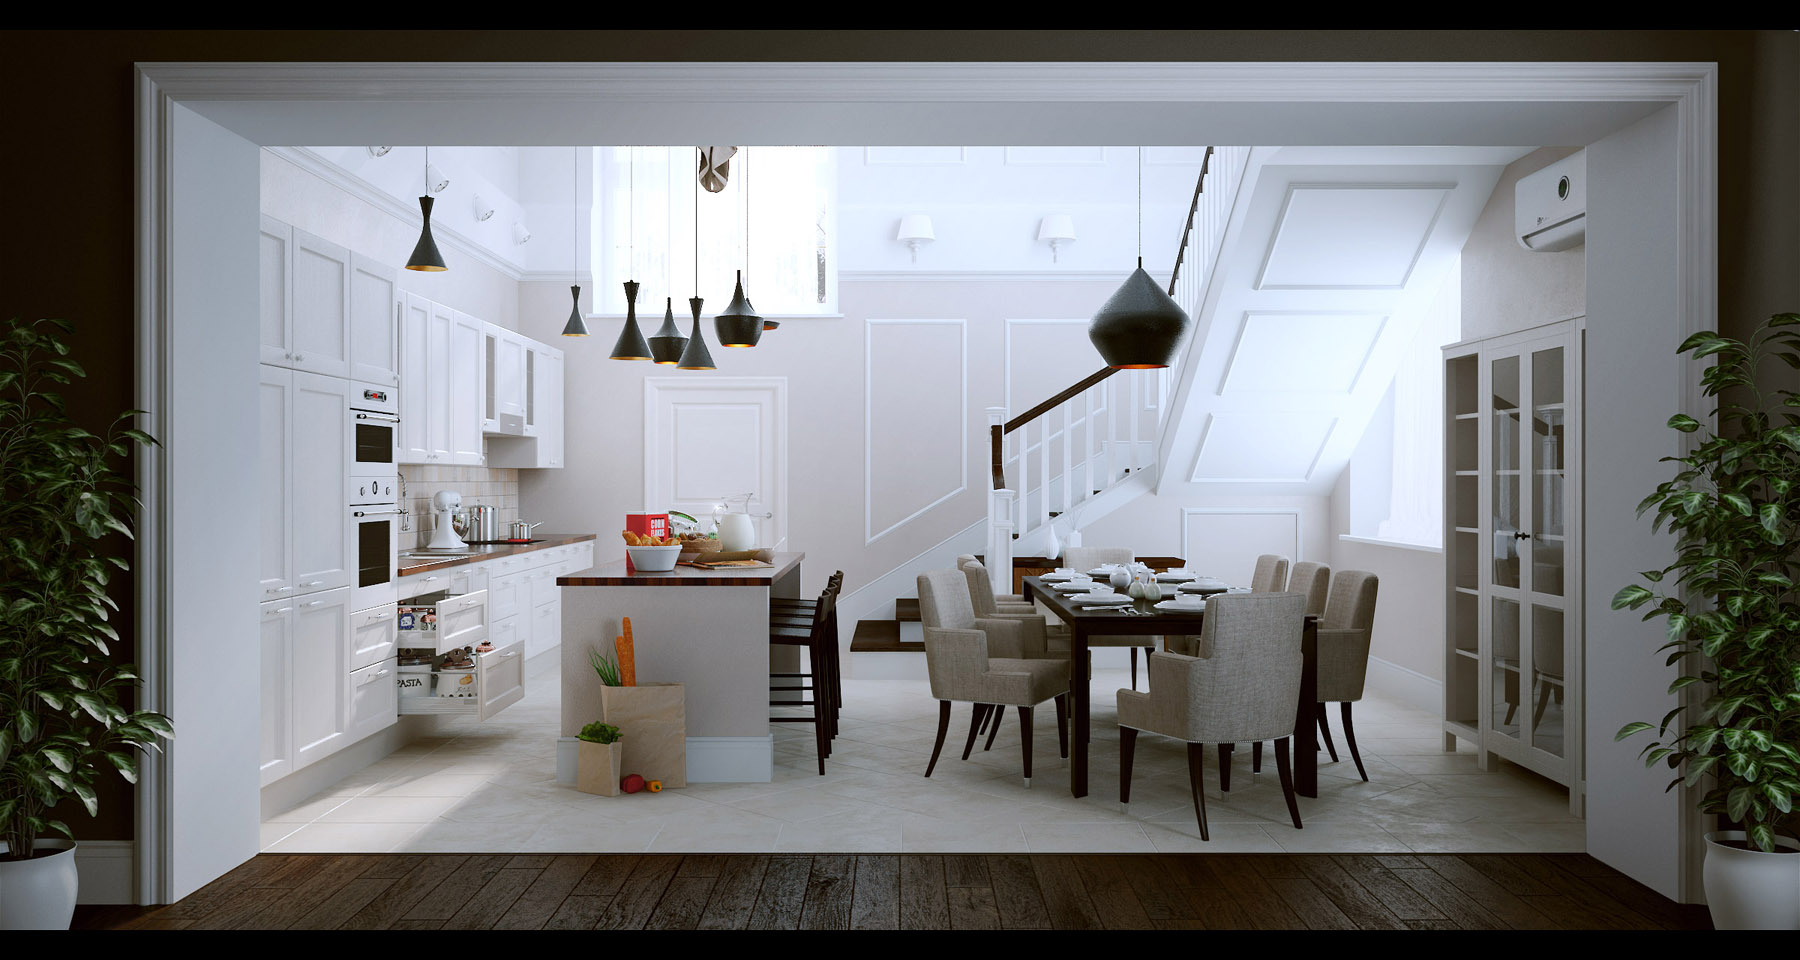 render_kitch_001_final